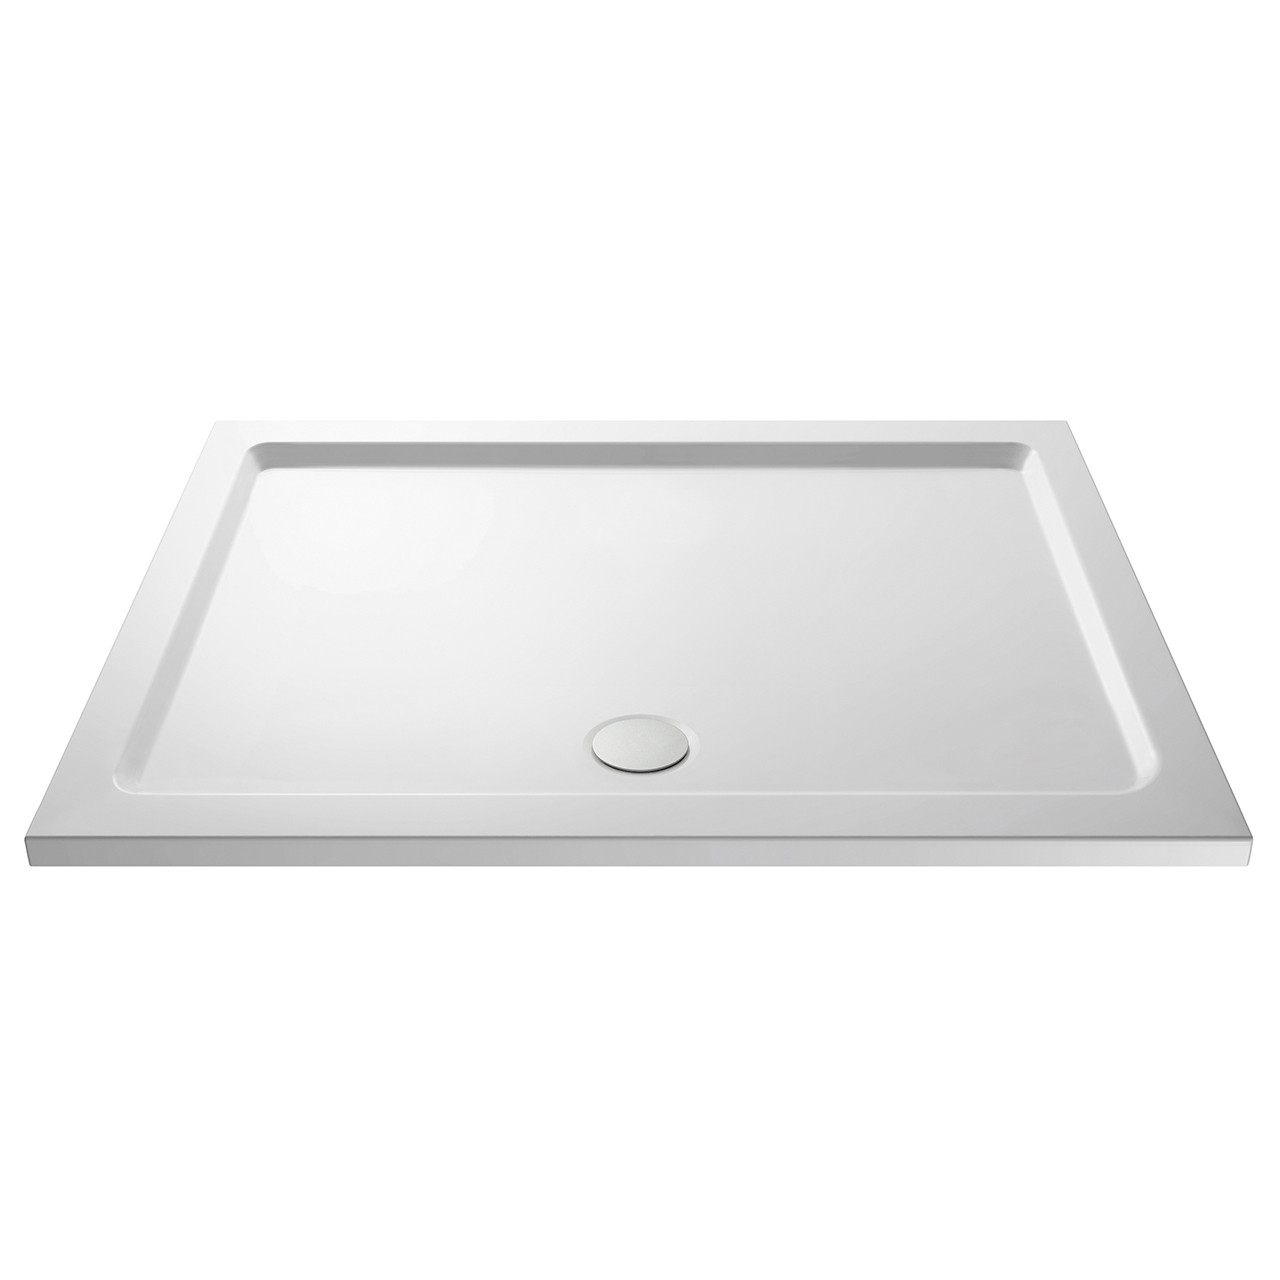 Nuie Pearlstone 1700mm x 800mm Rectangular Shower Tray with Centre Edge Waste - NTP063